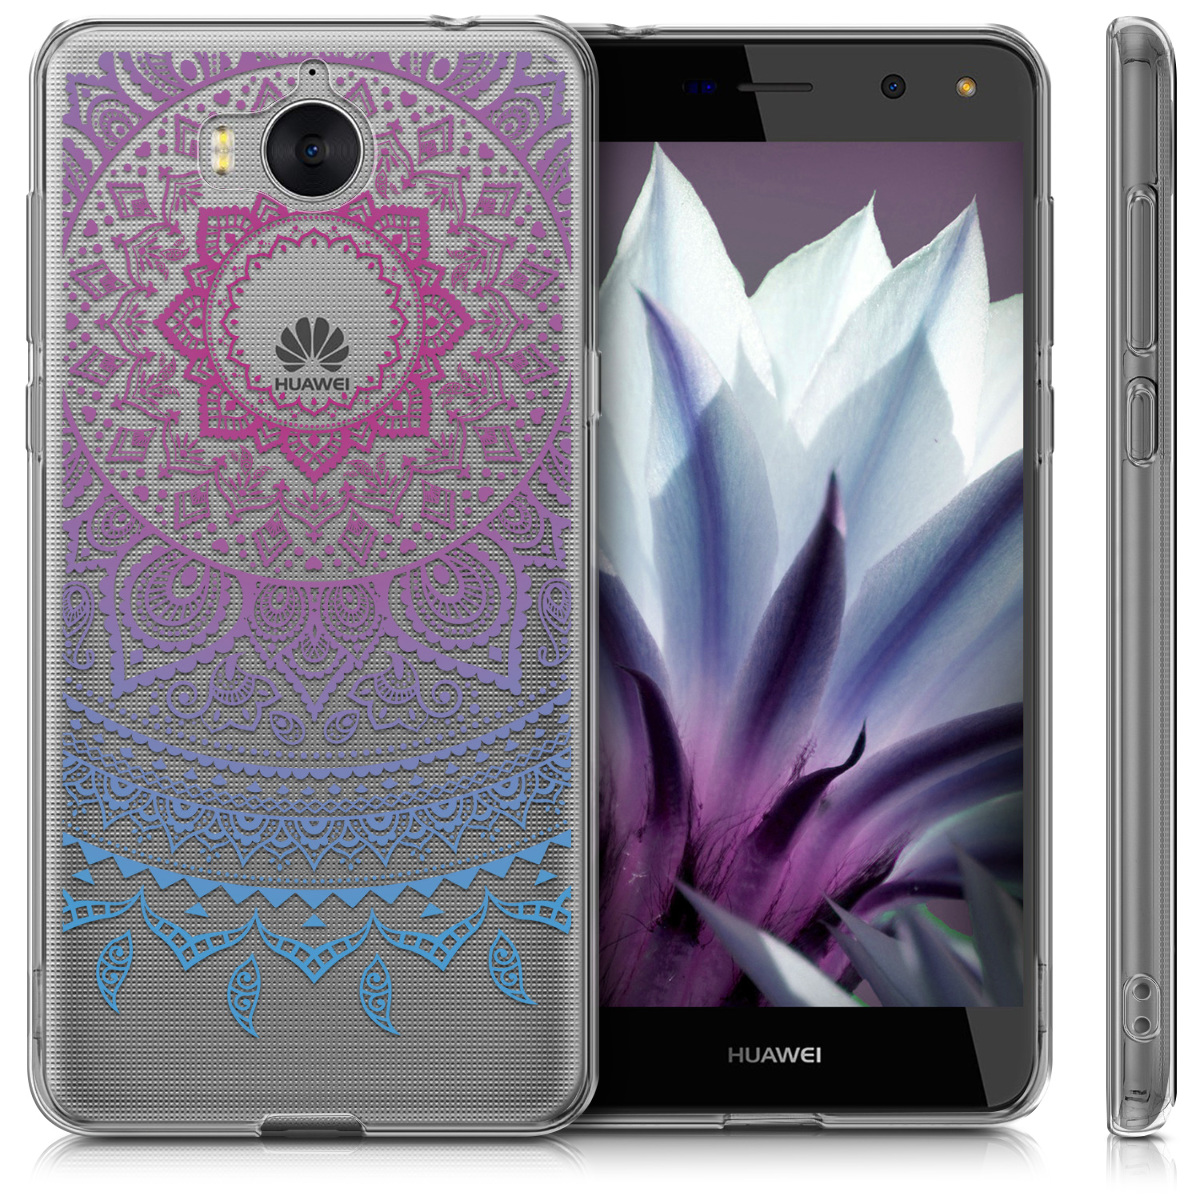 coque pour huawei y6 2017 housse housse silicone protection transparente ebay. Black Bedroom Furniture Sets. Home Design Ideas